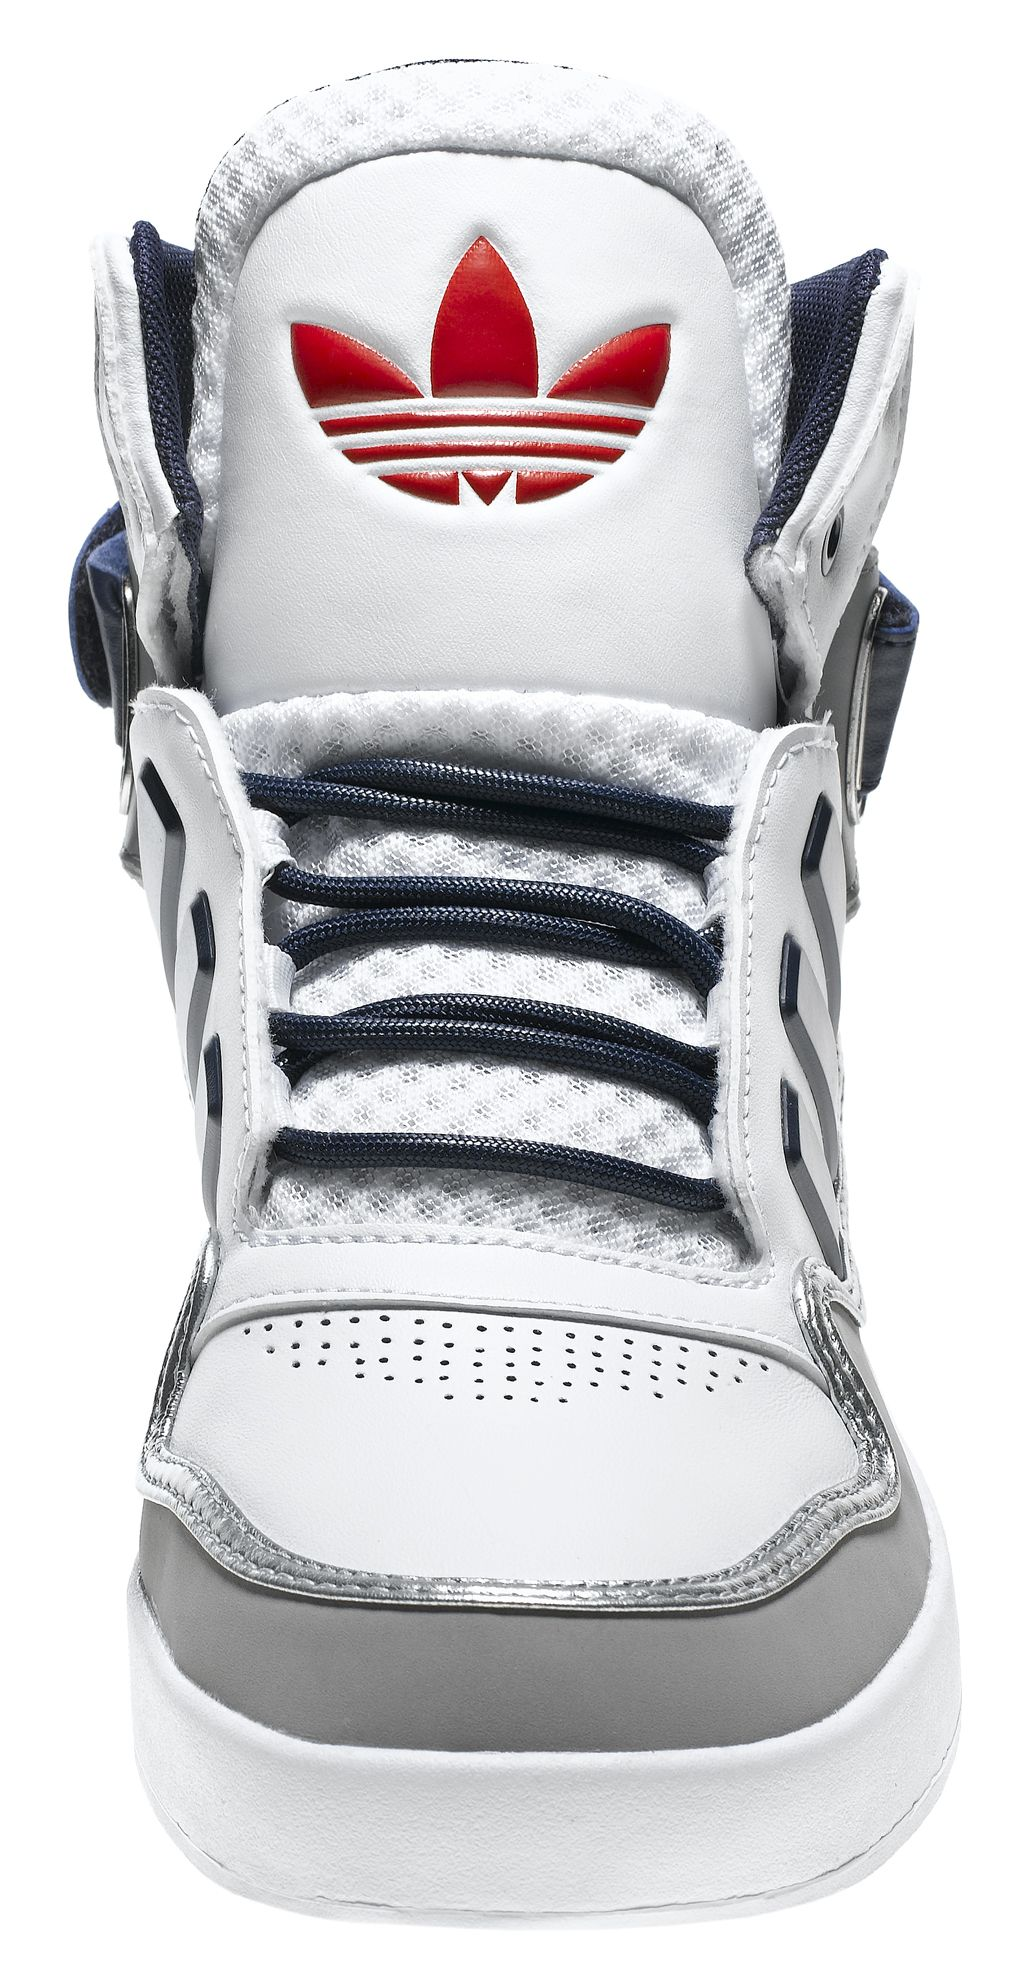 Ar 2 0 Exclusive Edition For Athletes World Vans High Top Sneaker Top Sneakers High Top Sneakers